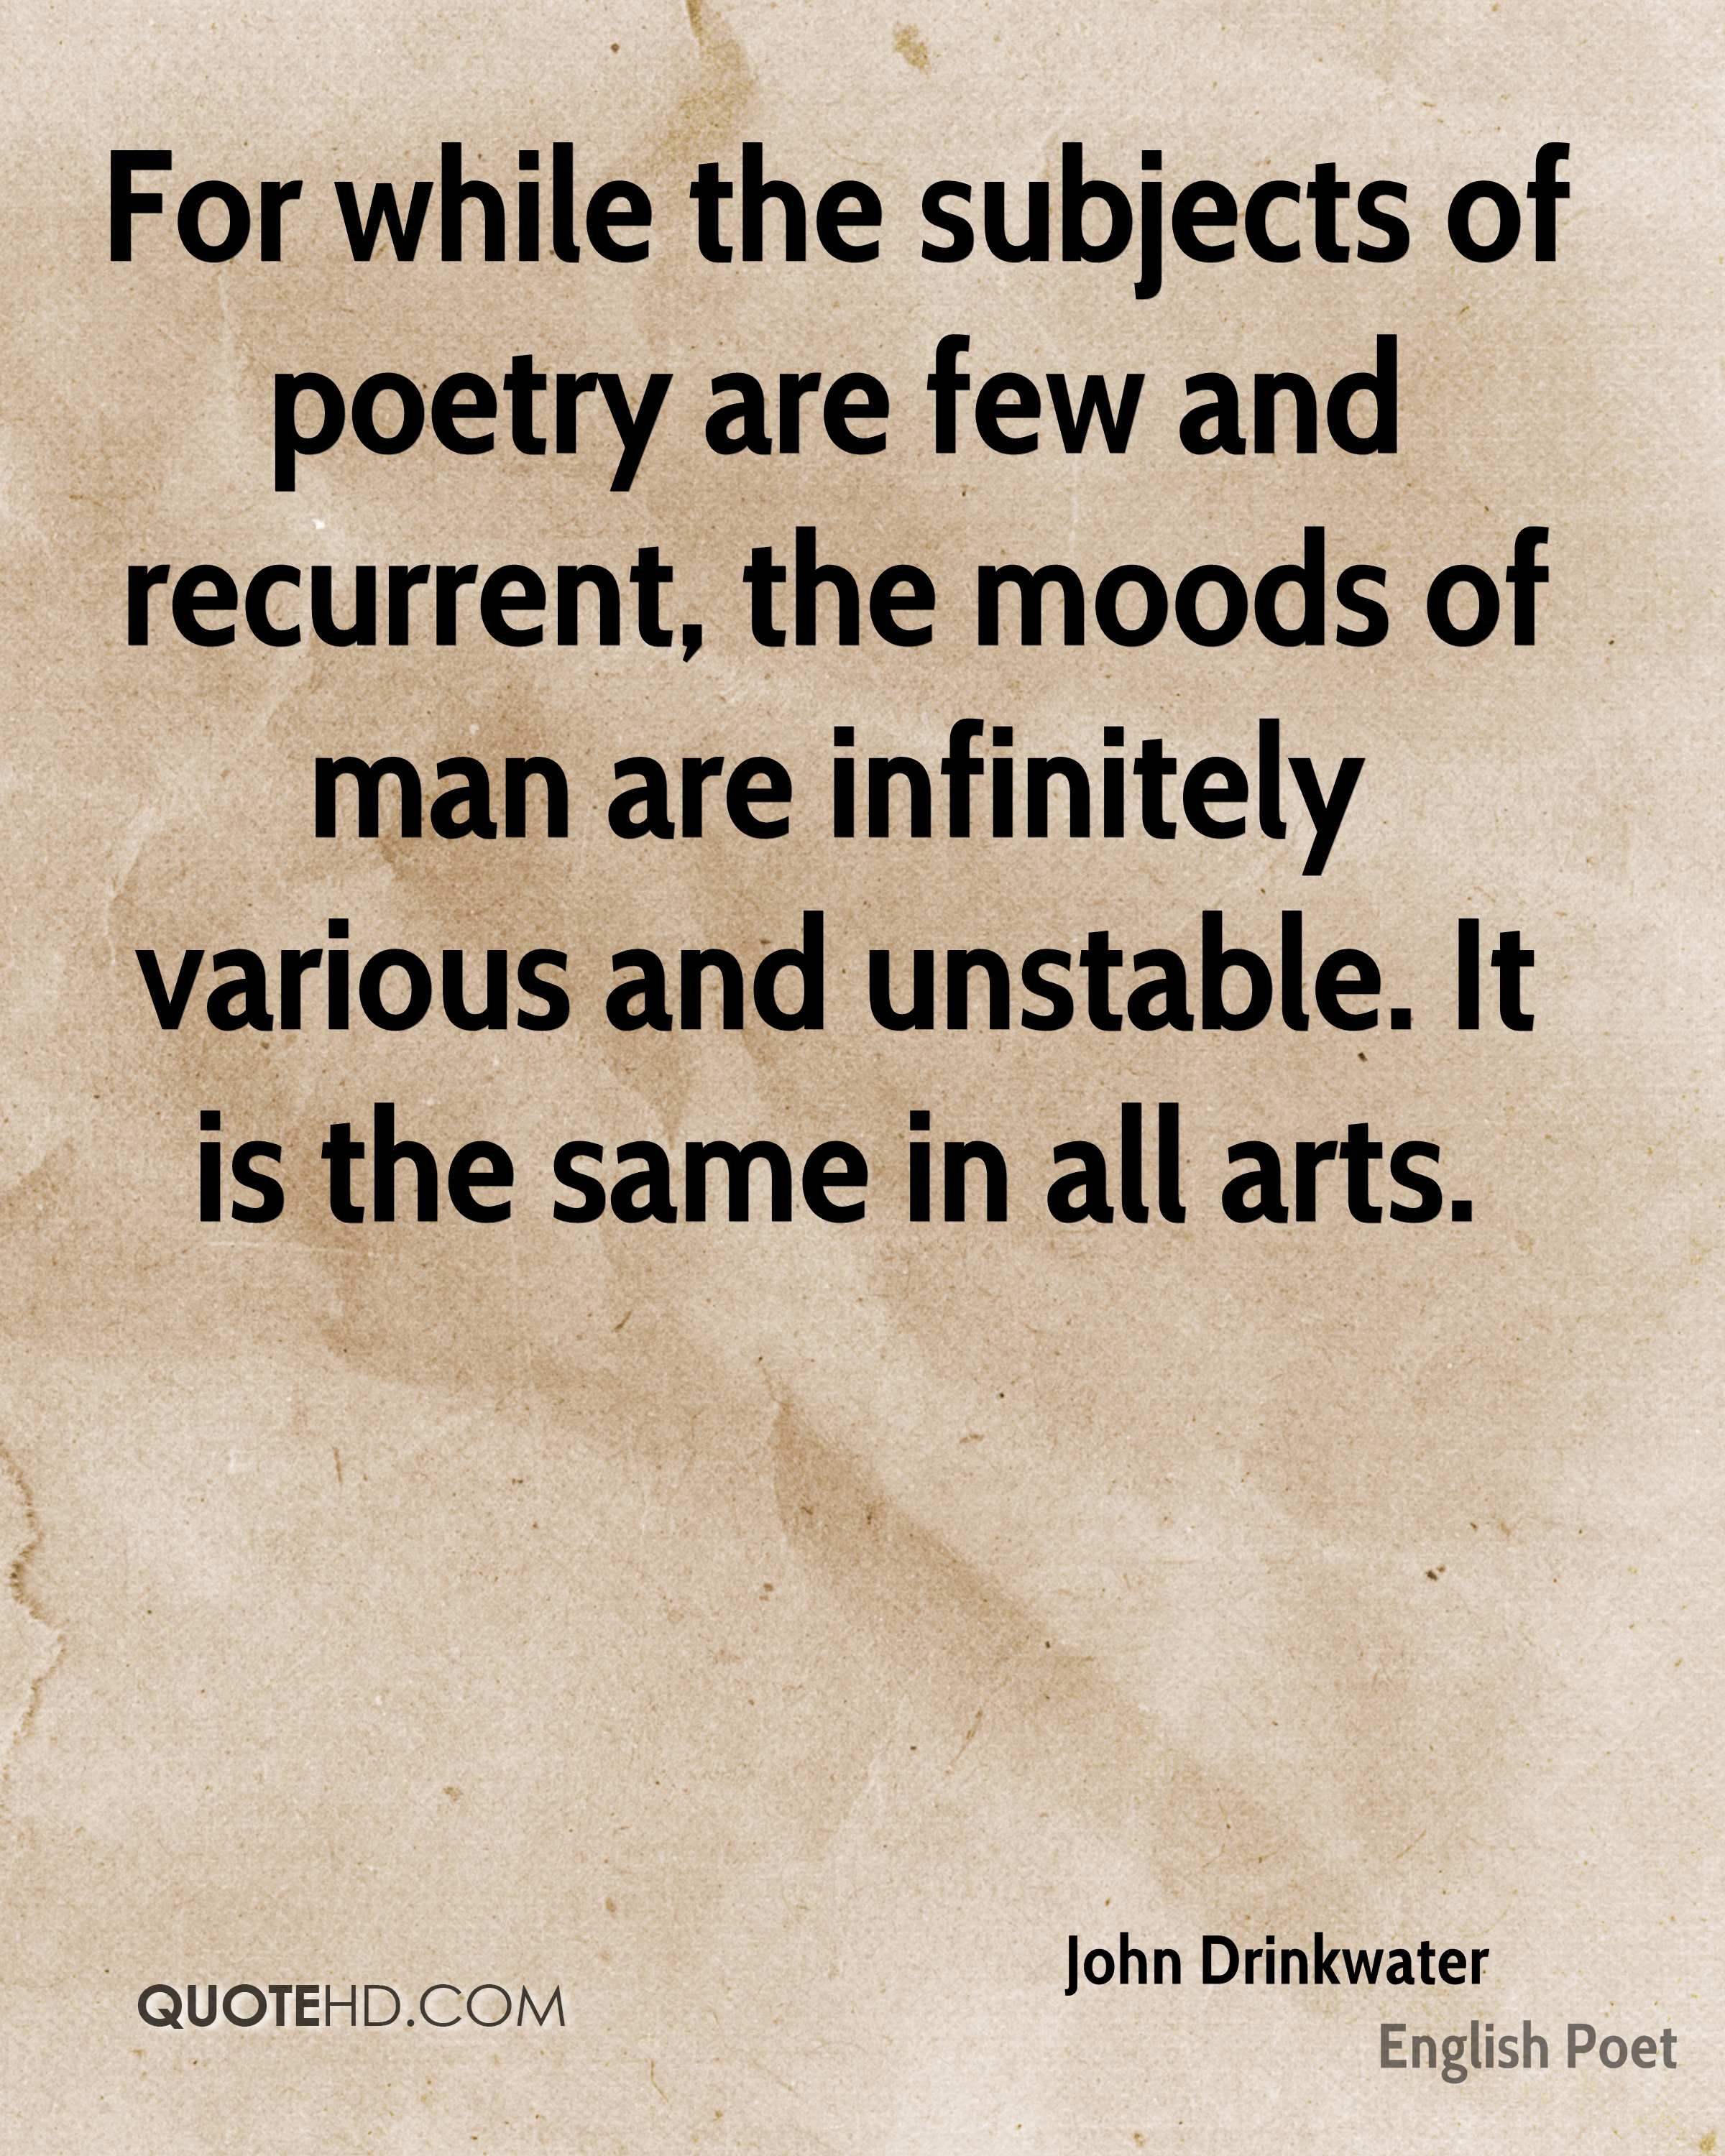 For while the subjects of poetry are few and recurrent, the moods of man are infinitely various and unstable. It is the same in all arts.